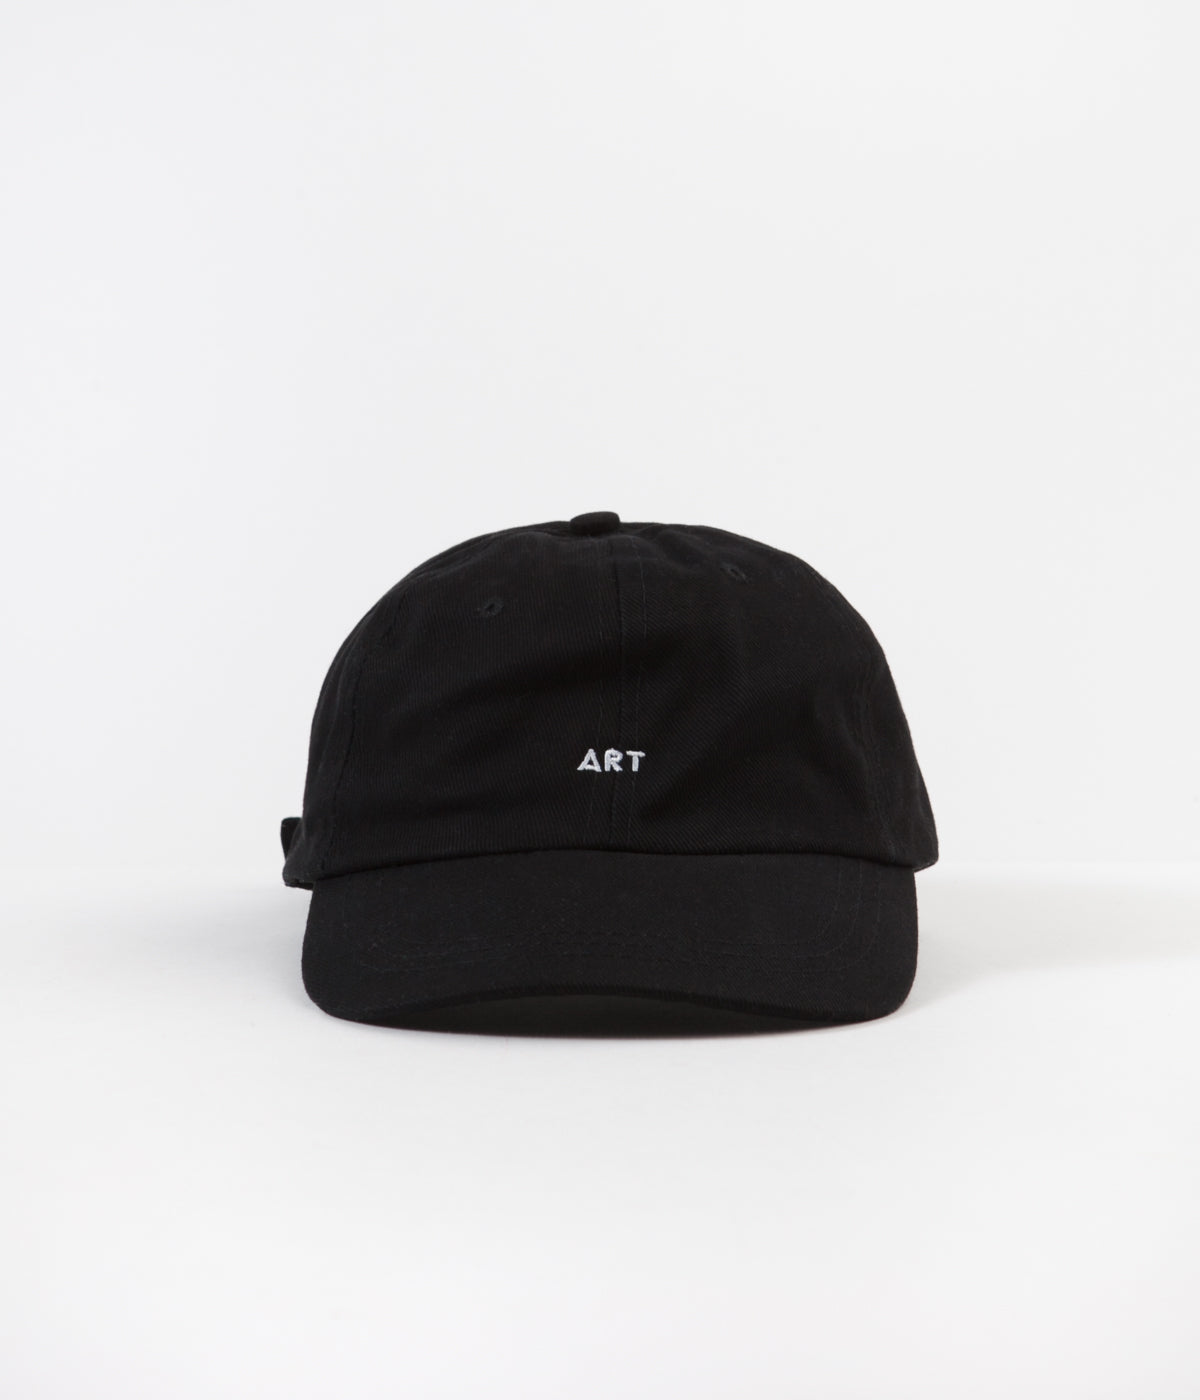 Poetic Collective Art Cap - Black